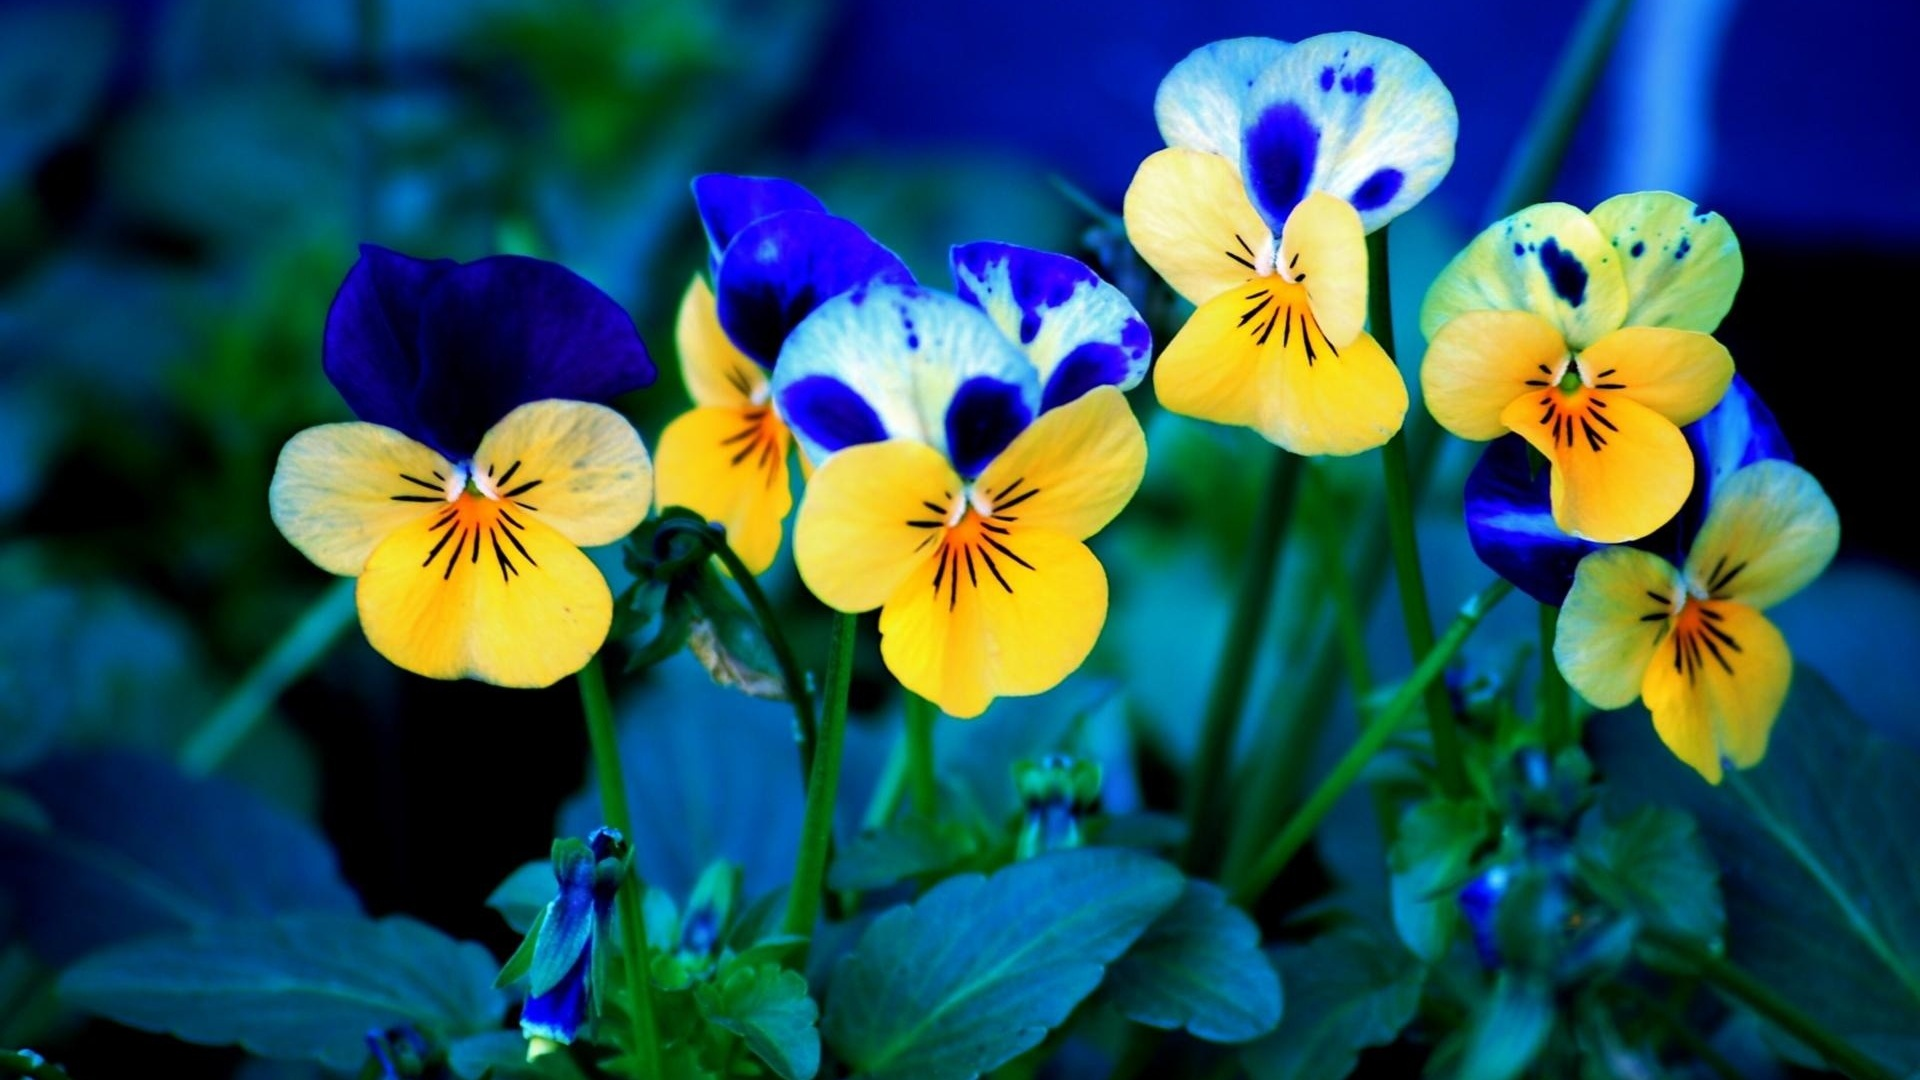 spring flowers wallpaper.